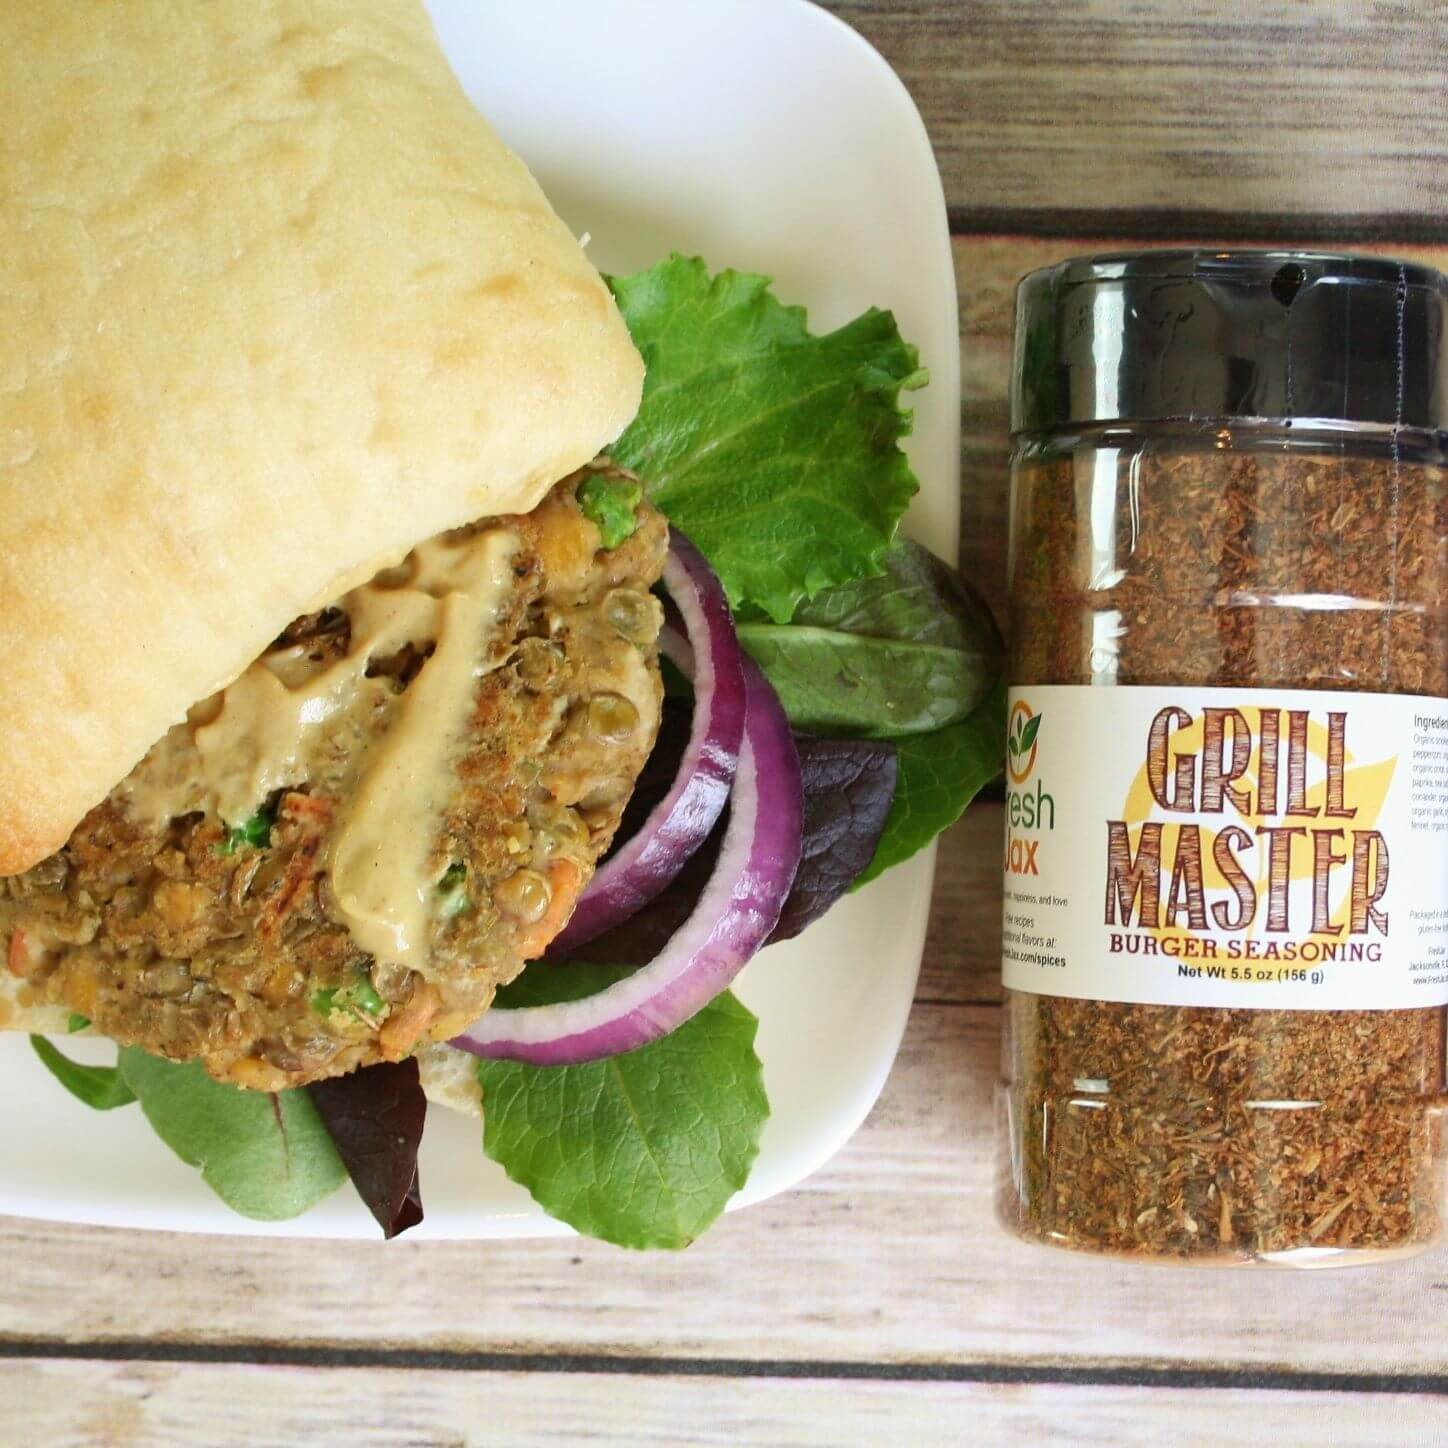 Lentil and chickpea burger recipe with FreshJax Organic Grill Master Burger Blend.